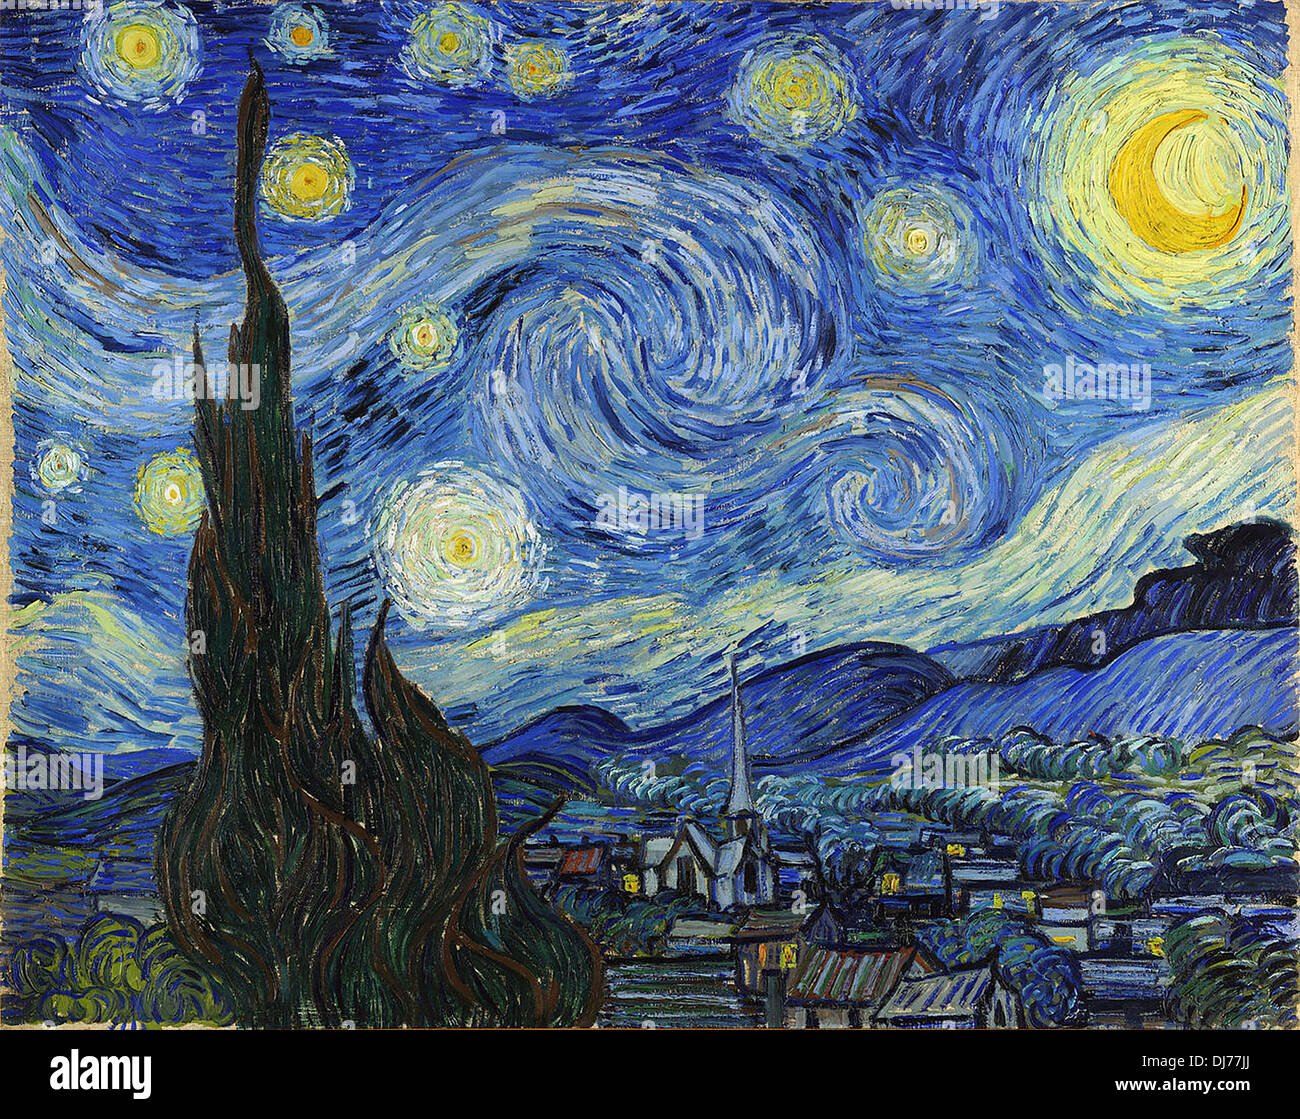 The Starry Night by Vincent van Gogh Stock Photo